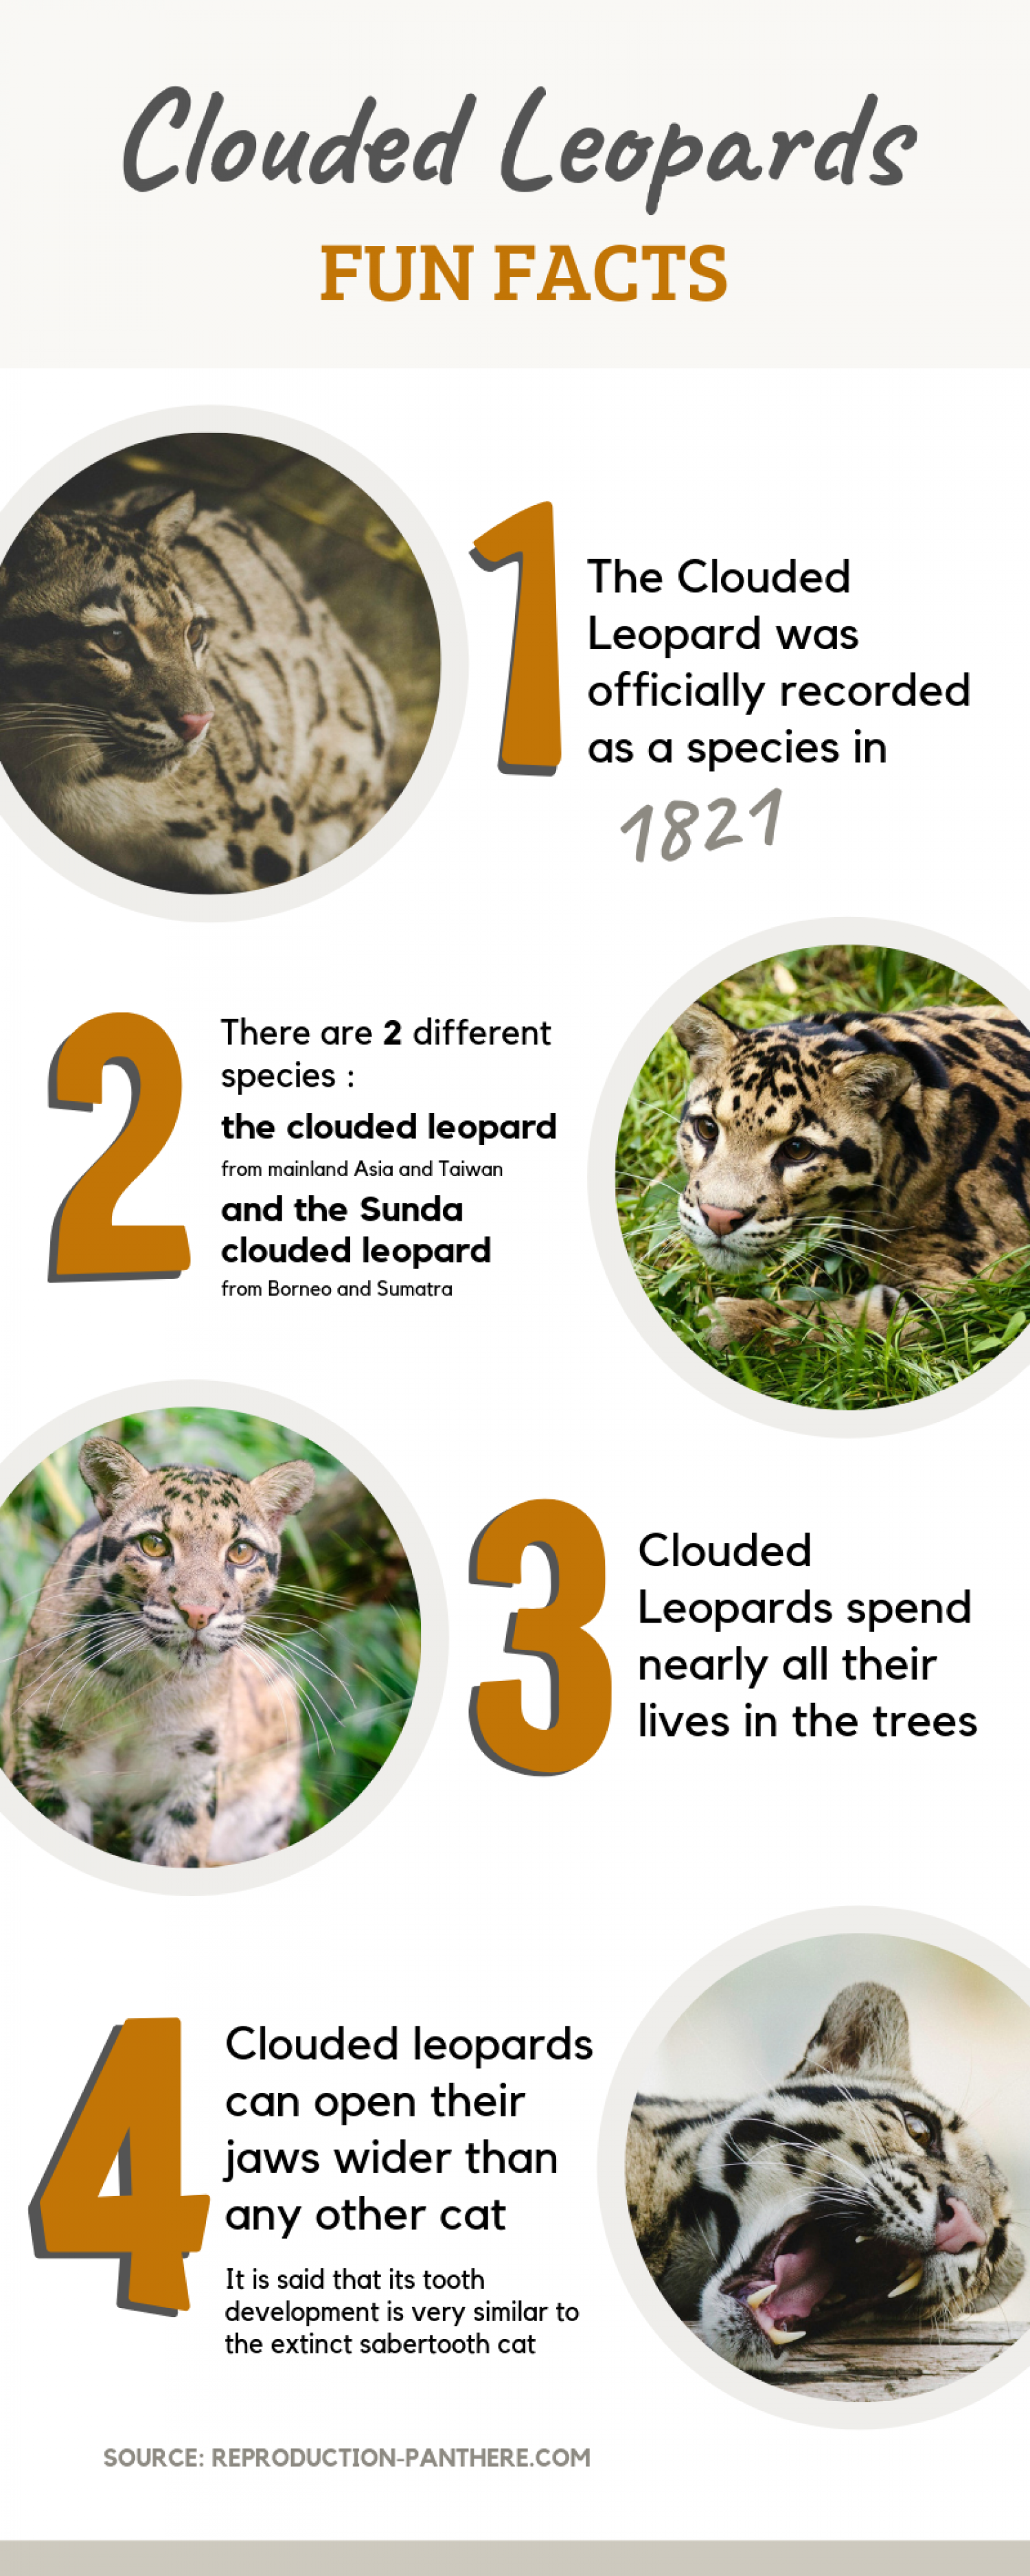 Fun facts about Clouded Leopards Infographic